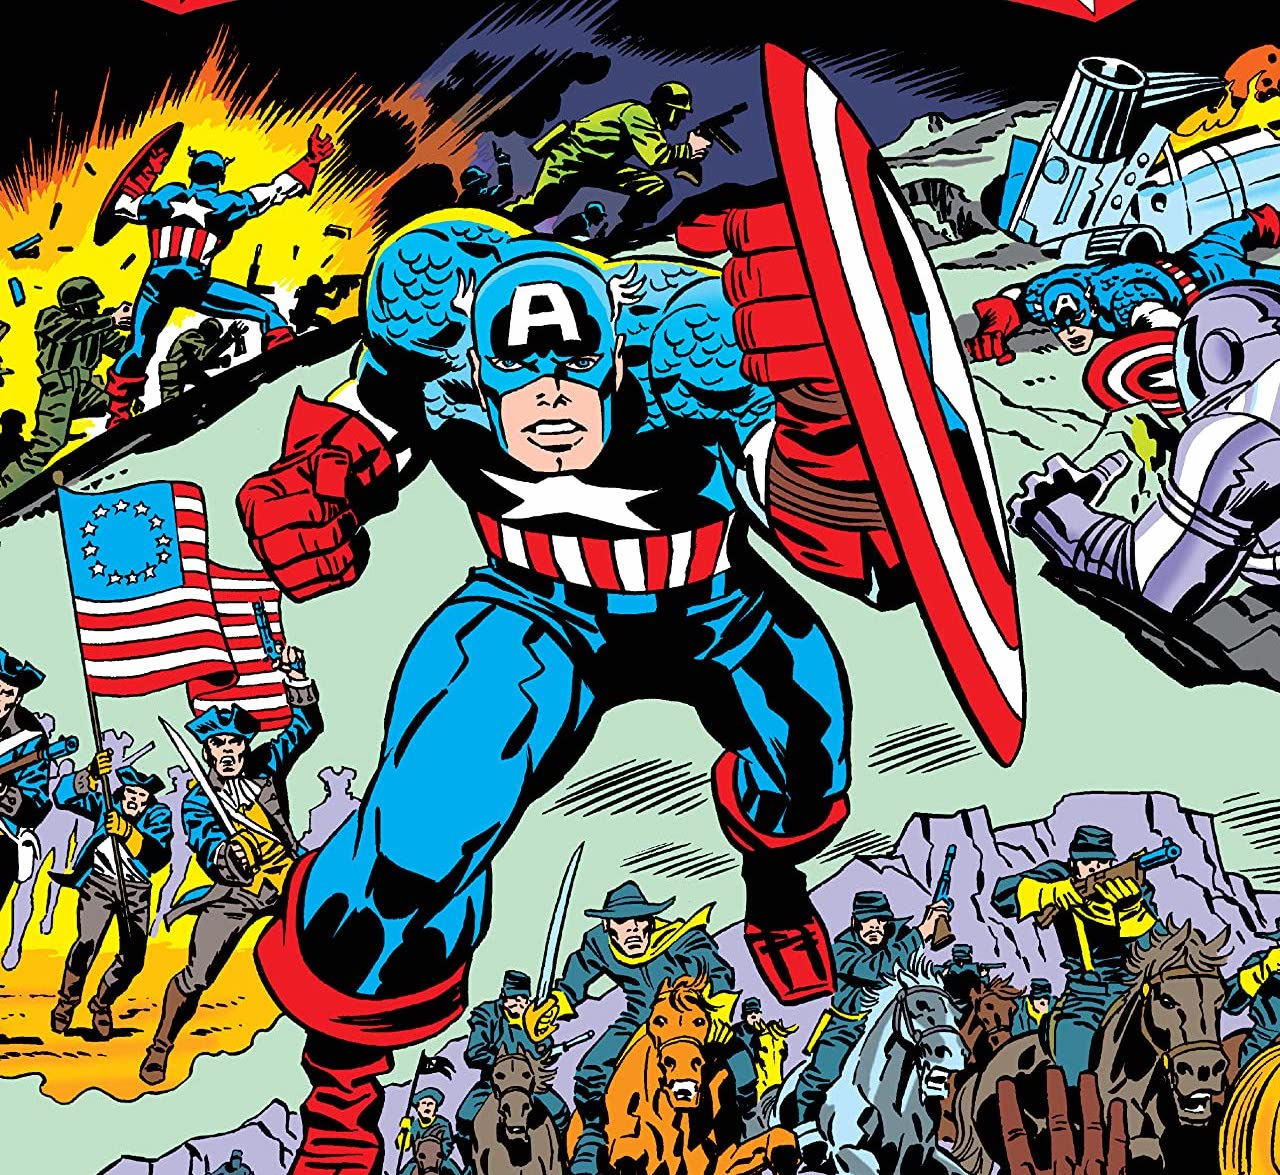 Celebrate the Fourth of July with 'Captain America's Bicentennial Battles Treasury Edition'